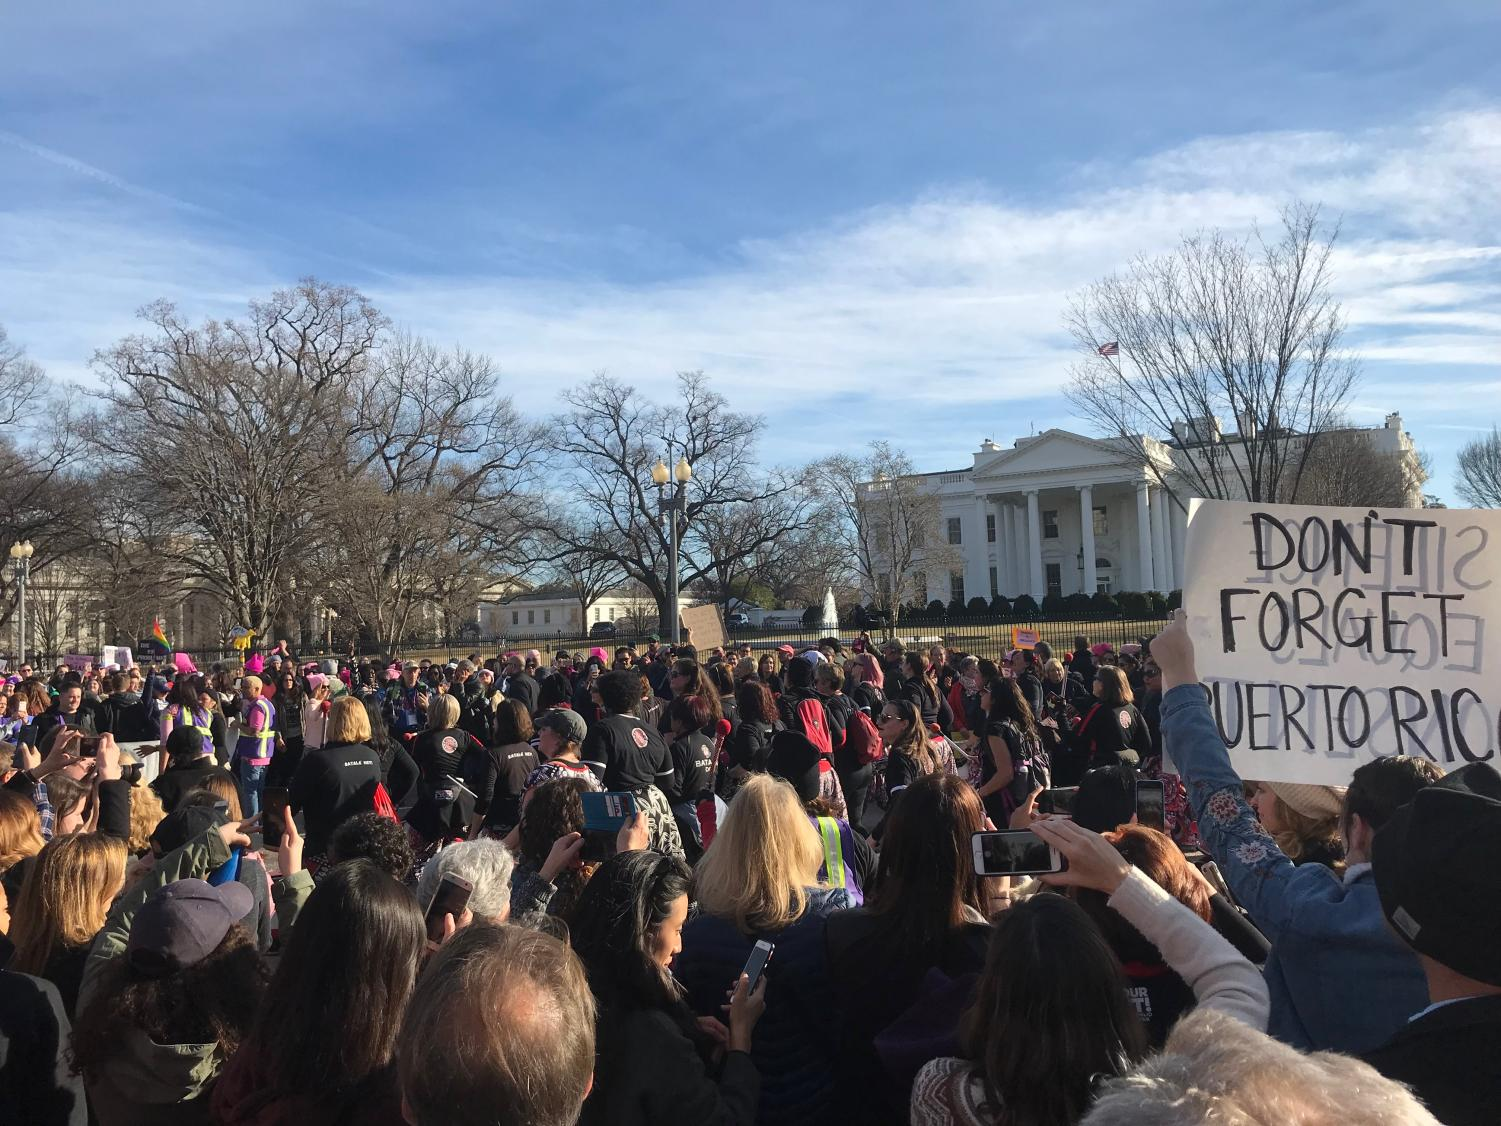 Women's March attendees protest at the White House. This year's march drew about 10,000 participants, including many Whitman students. Photo by Eva Liles.